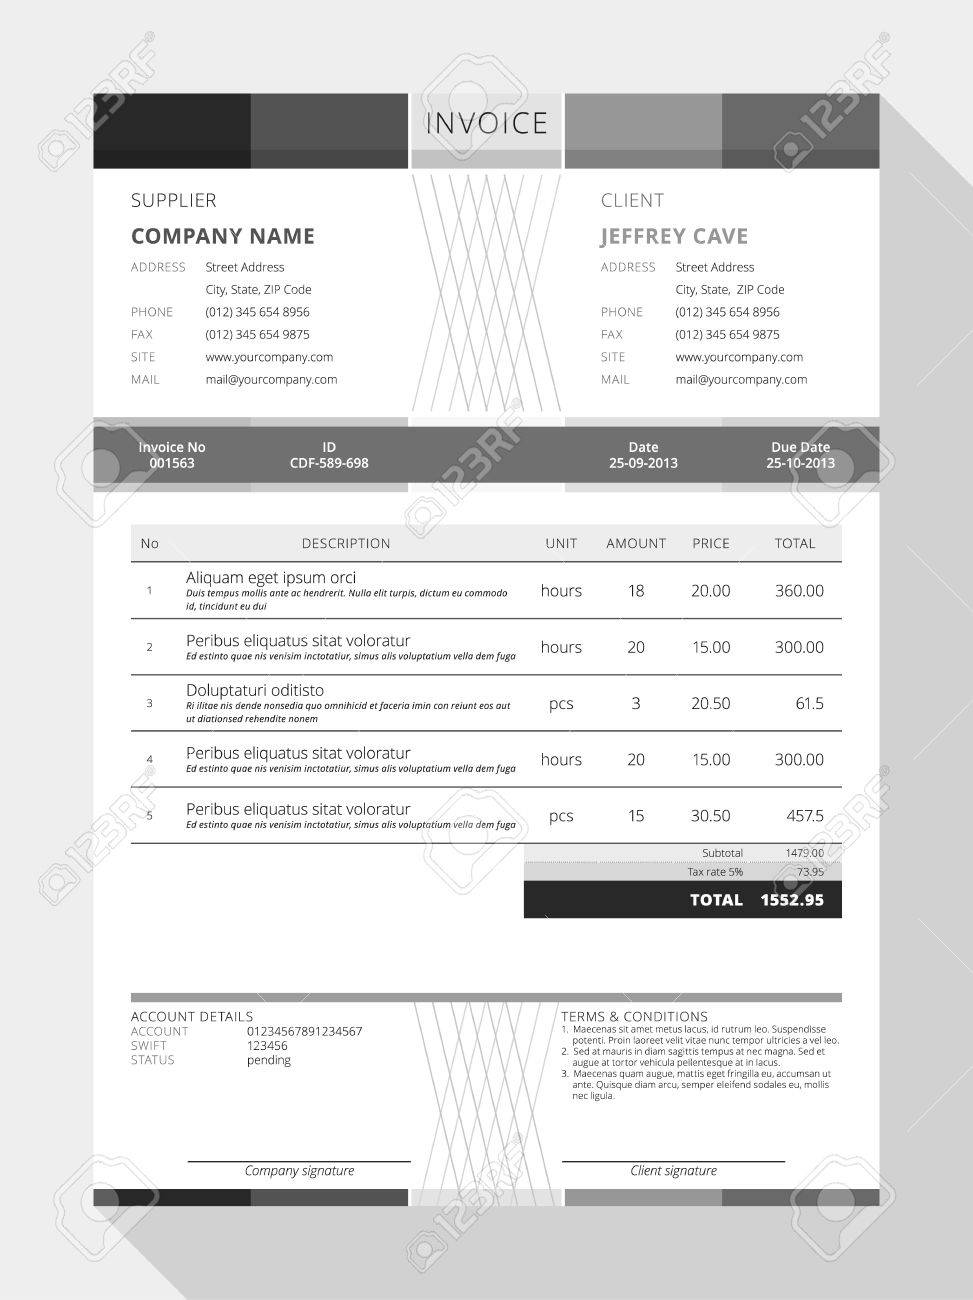 Hucareus  Pretty Design An Invoice  Professional Graphic Design Invoice  With Glamorous Vector Customizable Invoice Form Template Design Vector   Design An Invoice With Delectable Invoice Line Item Also Invoice Template Uk In Addition Invoicing With Stripe And What Is The Purpose Of An Invoice As Well As Carbon Copy Invoice Pads Additionally Request Invoice From Happytomco With Hucareus  Glamorous Design An Invoice  Professional Graphic Design Invoice  With Delectable Vector Customizable Invoice Form Template Design Vector   Design An Invoice And Pretty Invoice Line Item Also Invoice Template Uk In Addition Invoicing With Stripe From Happytomco